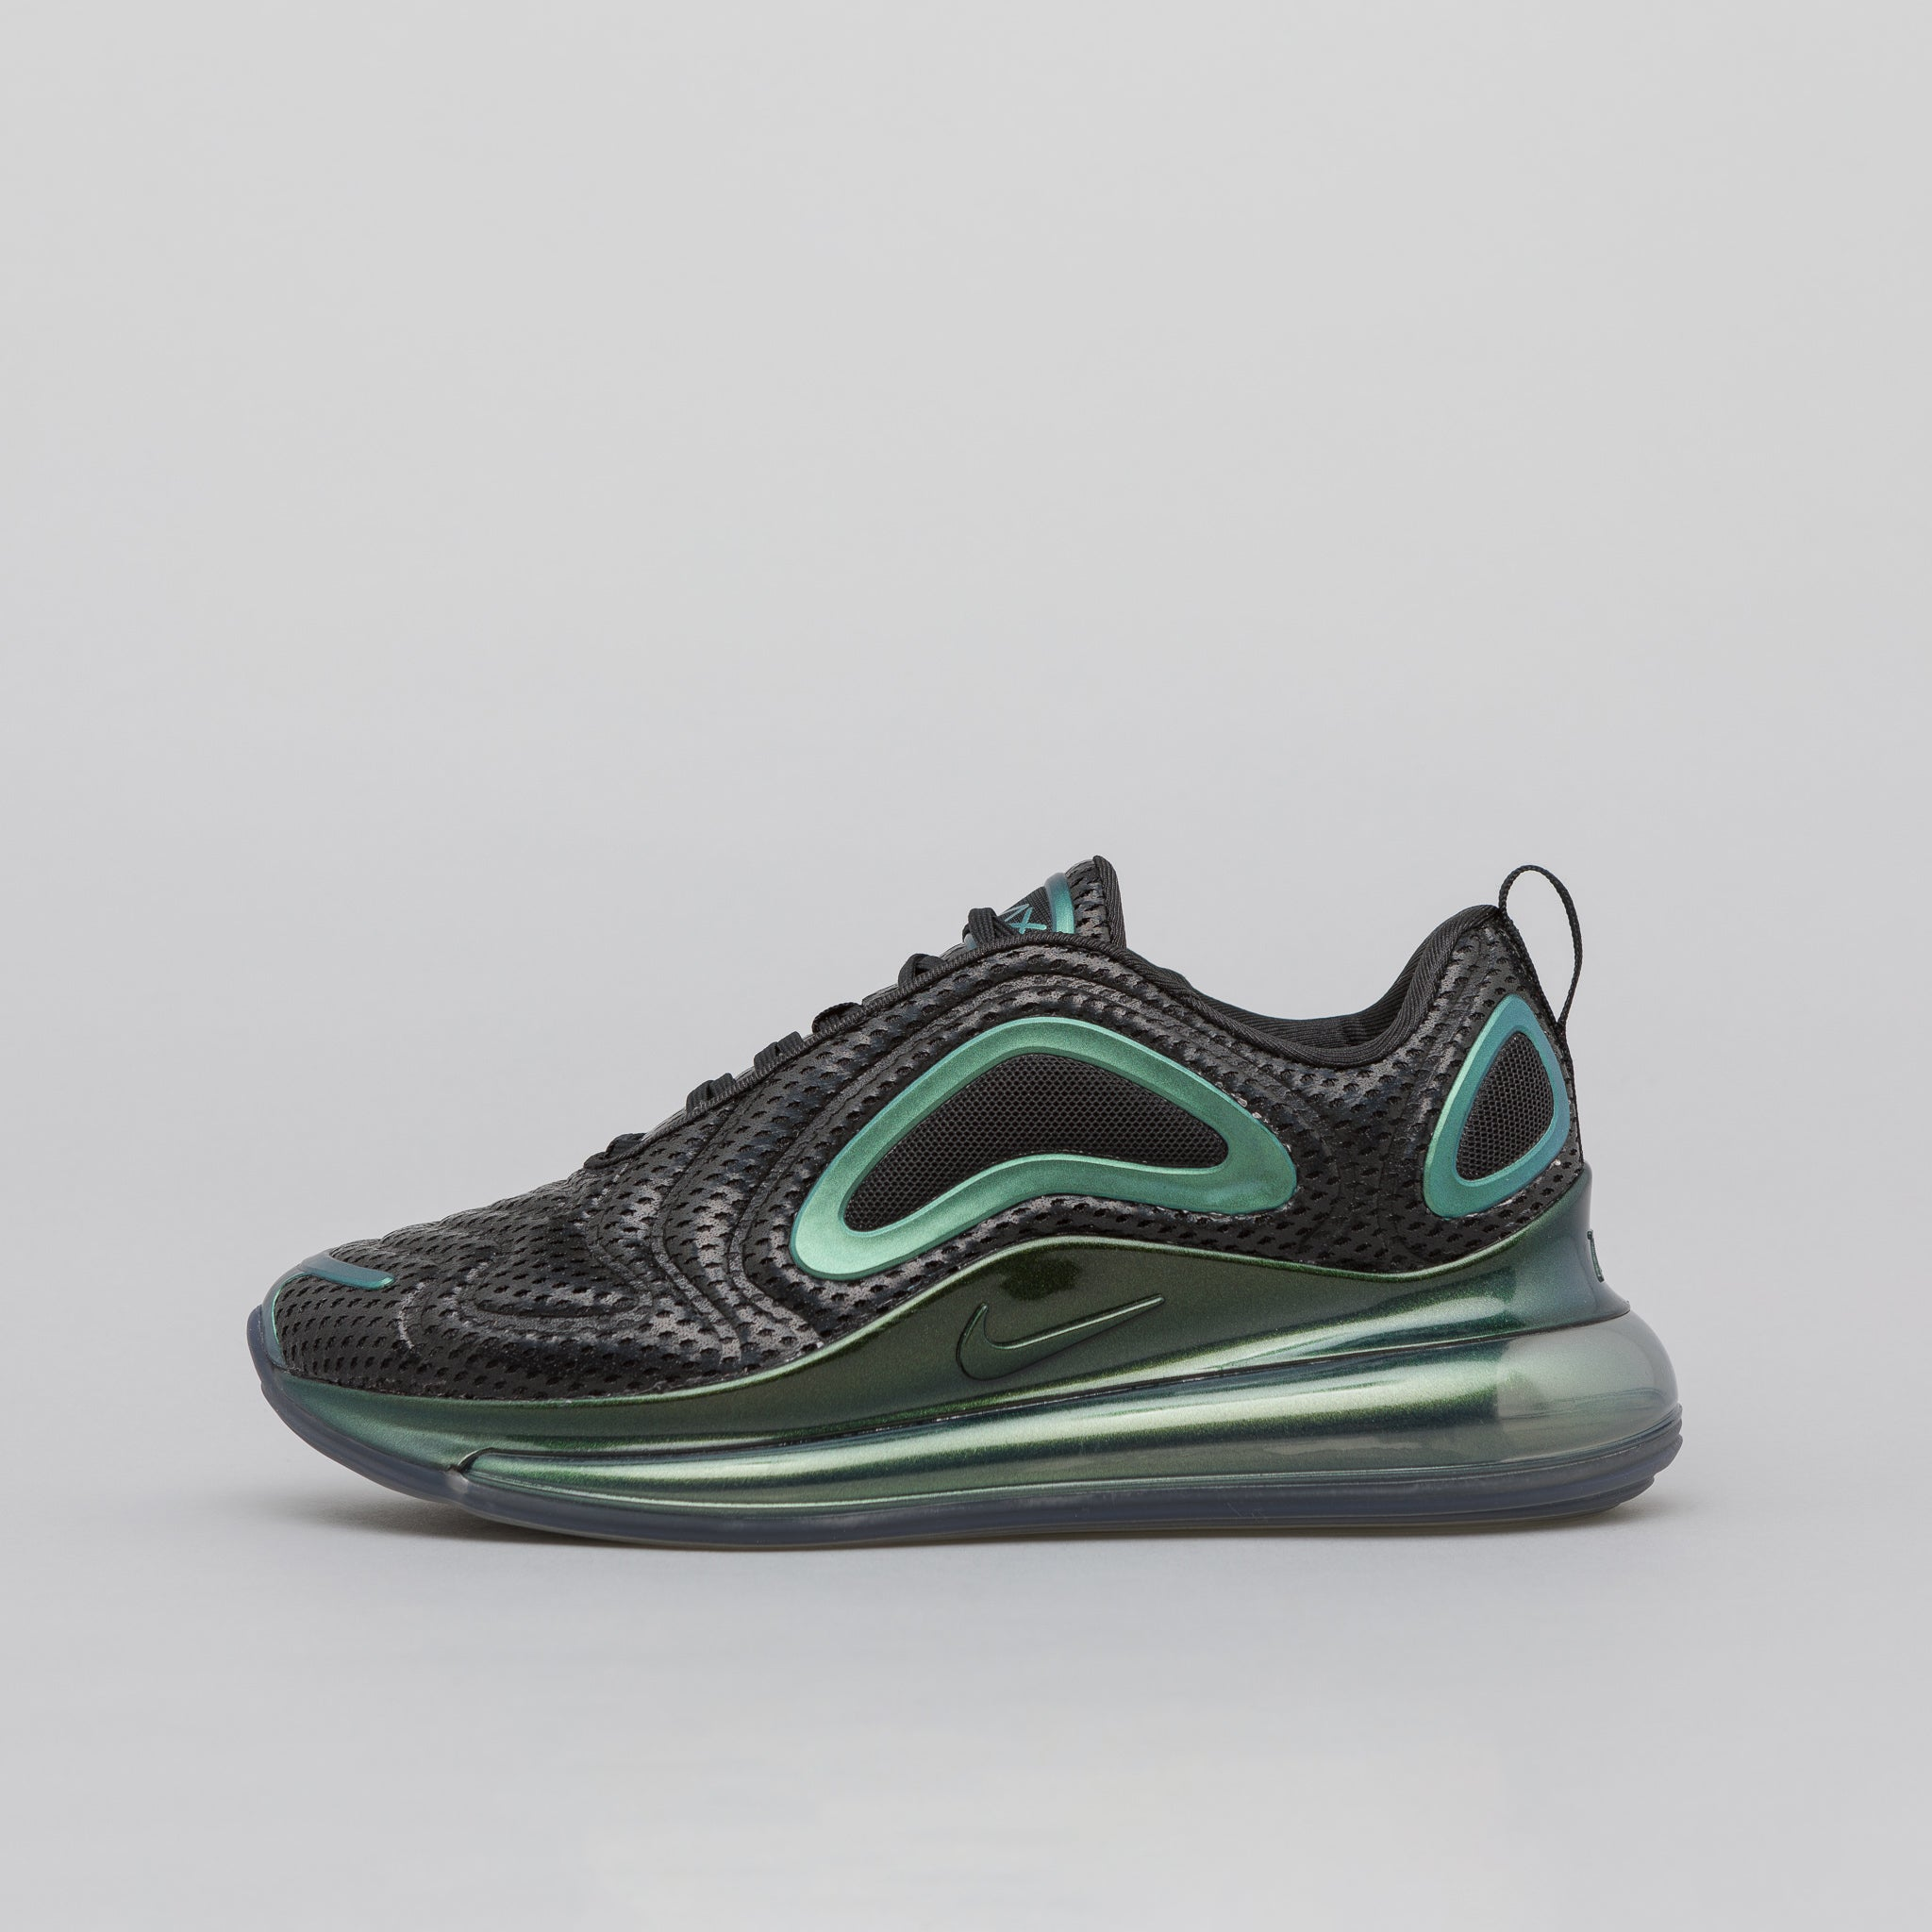 Women's Air Max 720 in Black/Metallic Silver